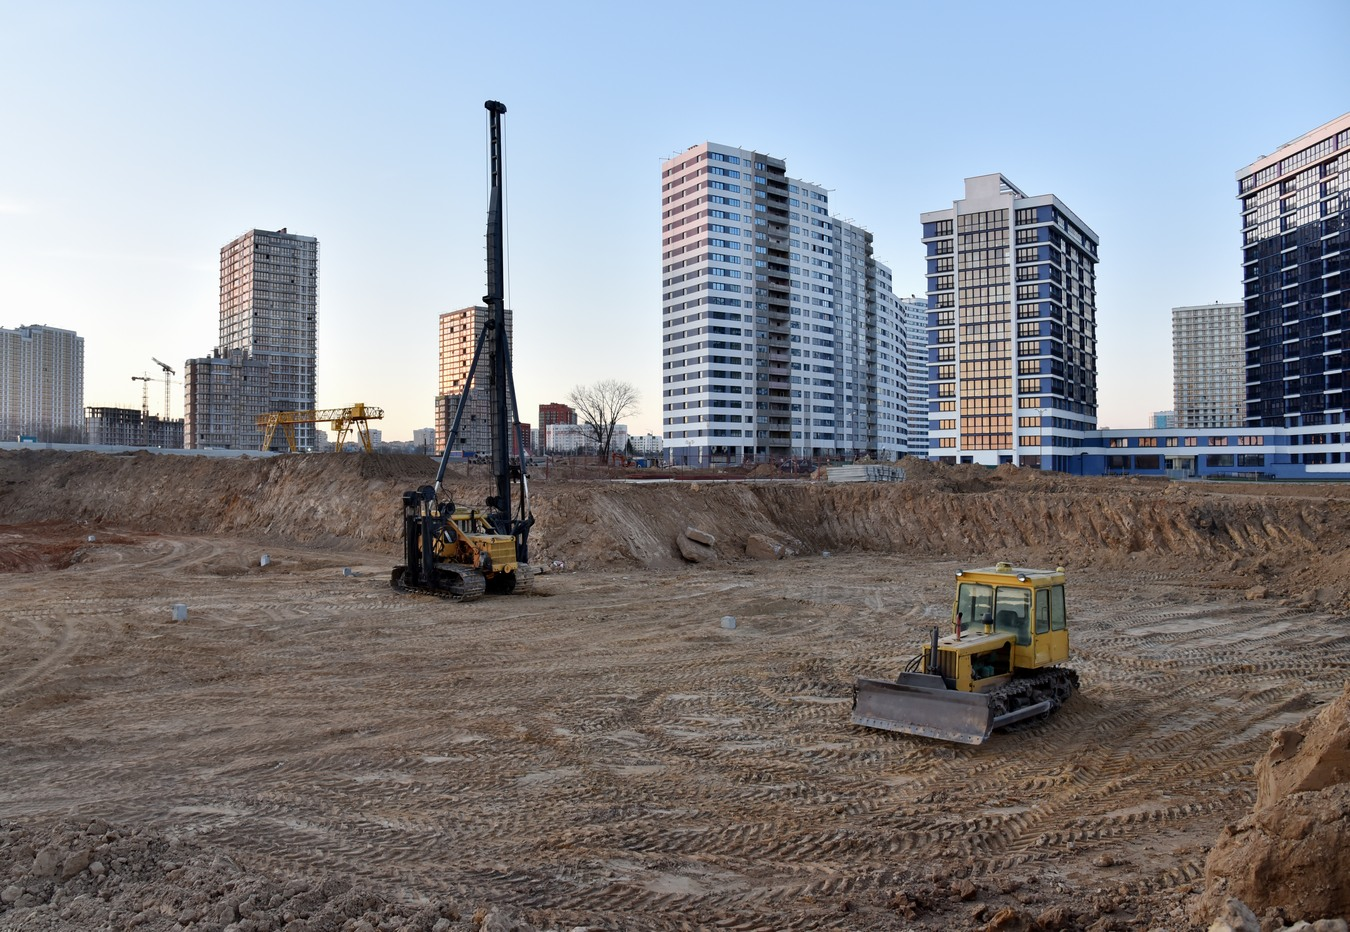 Tracked,Pile-driver,And,Bulldozer,At,Construction,Site,On,Sunset.,Piles